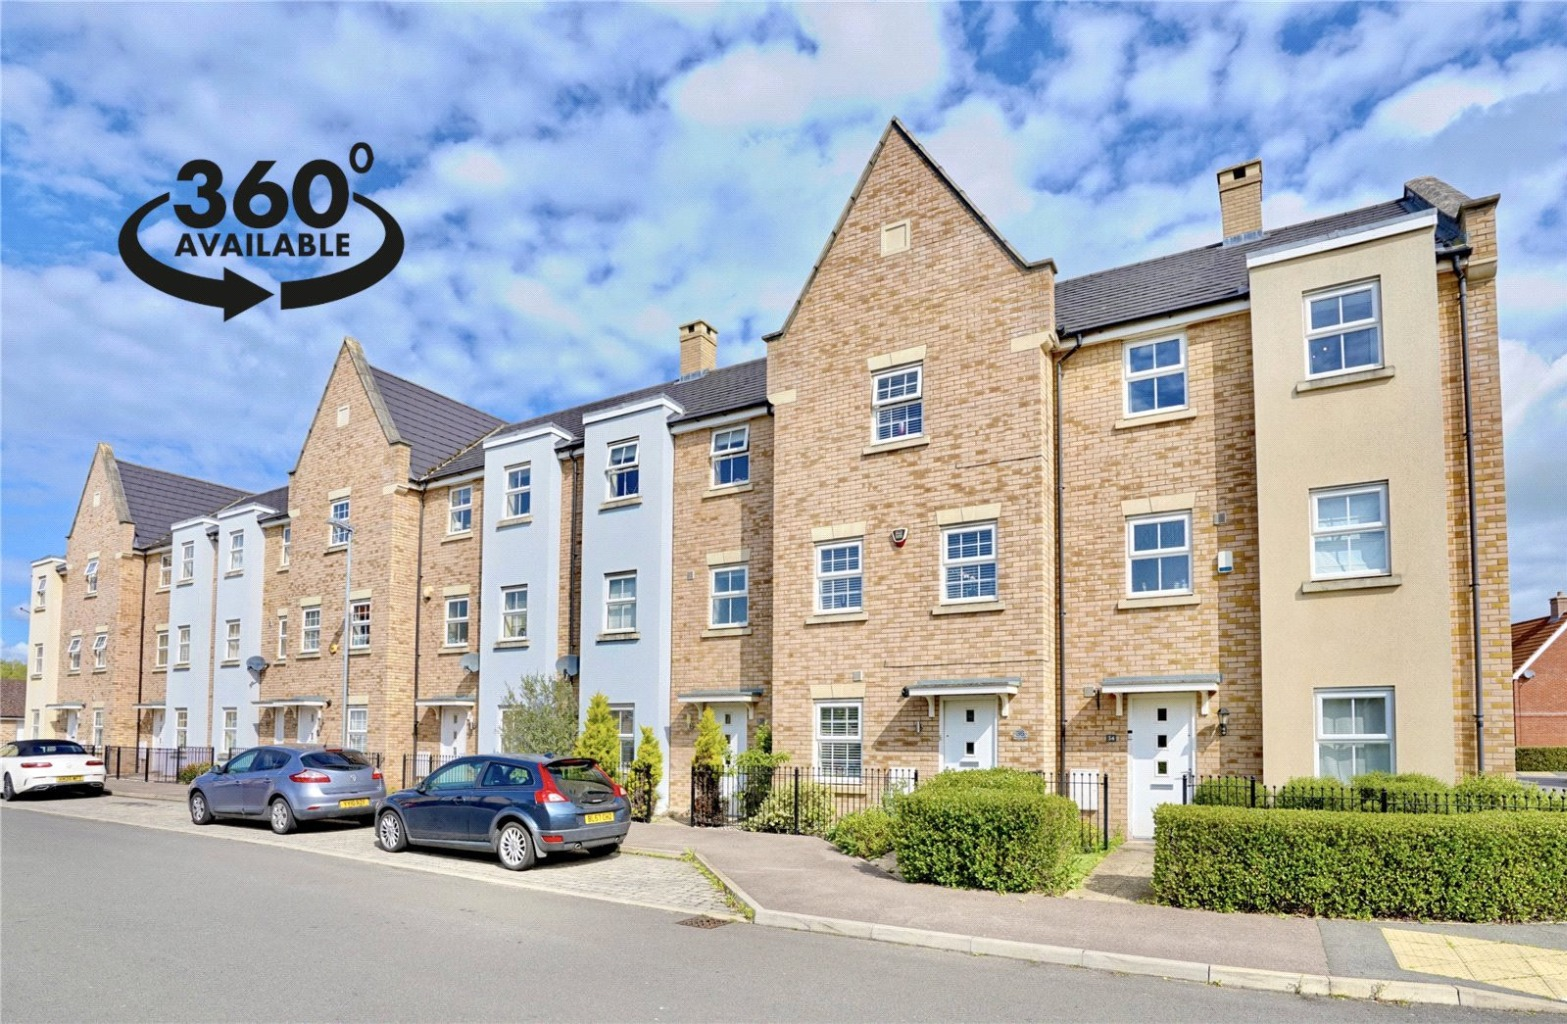 4 bed town house for sale in Buttercup Avenue, St. Neots - Property Image 1